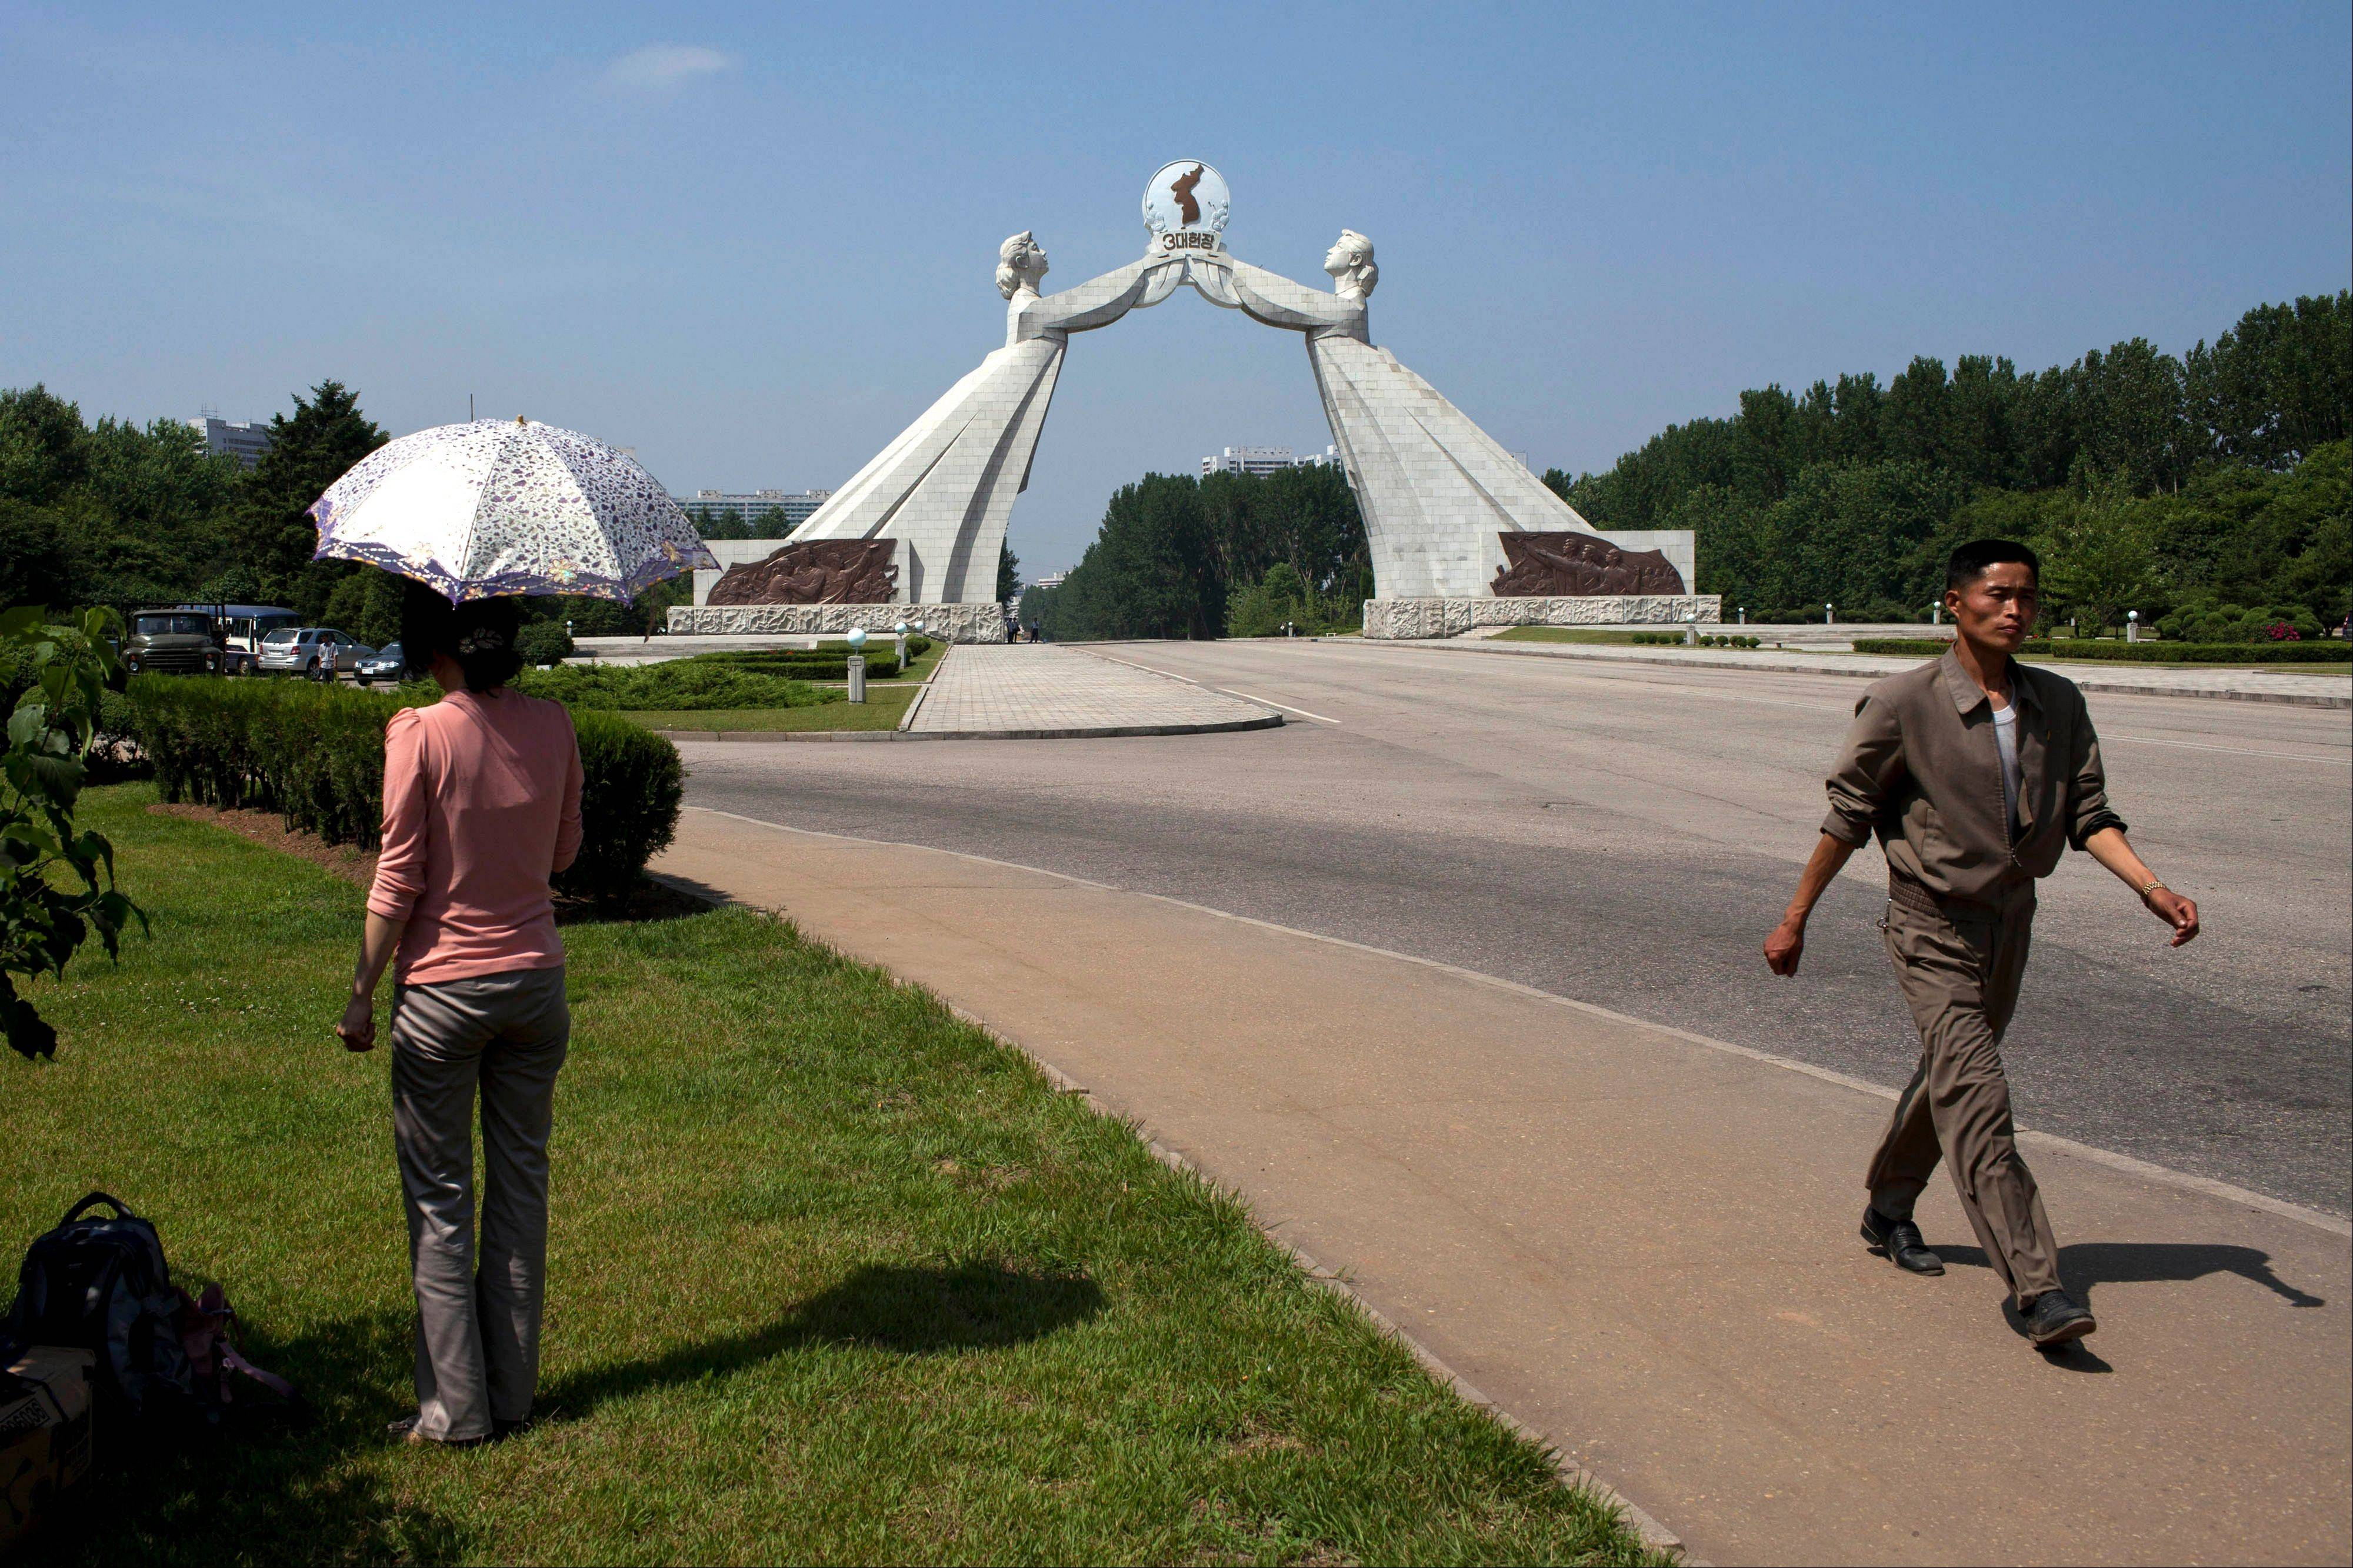 A woman rests under an umbrella while a man walks past her Saturday near a statue known as the Monument to the Three Charters for National Reunification, which symbolizes the hope for eventual reunification of the two Koreas, in Pyongyang, North Korea. In past years, the monument built over the road leading to South Korea has been the site of celebrations marking a joint reconciliation declaration signed by the two Koreas on June 15, 2000. This year�s events were canceled after high-level talks between the Seoul and Pyongyang governments, the first in six years, were called off earlier in the week.